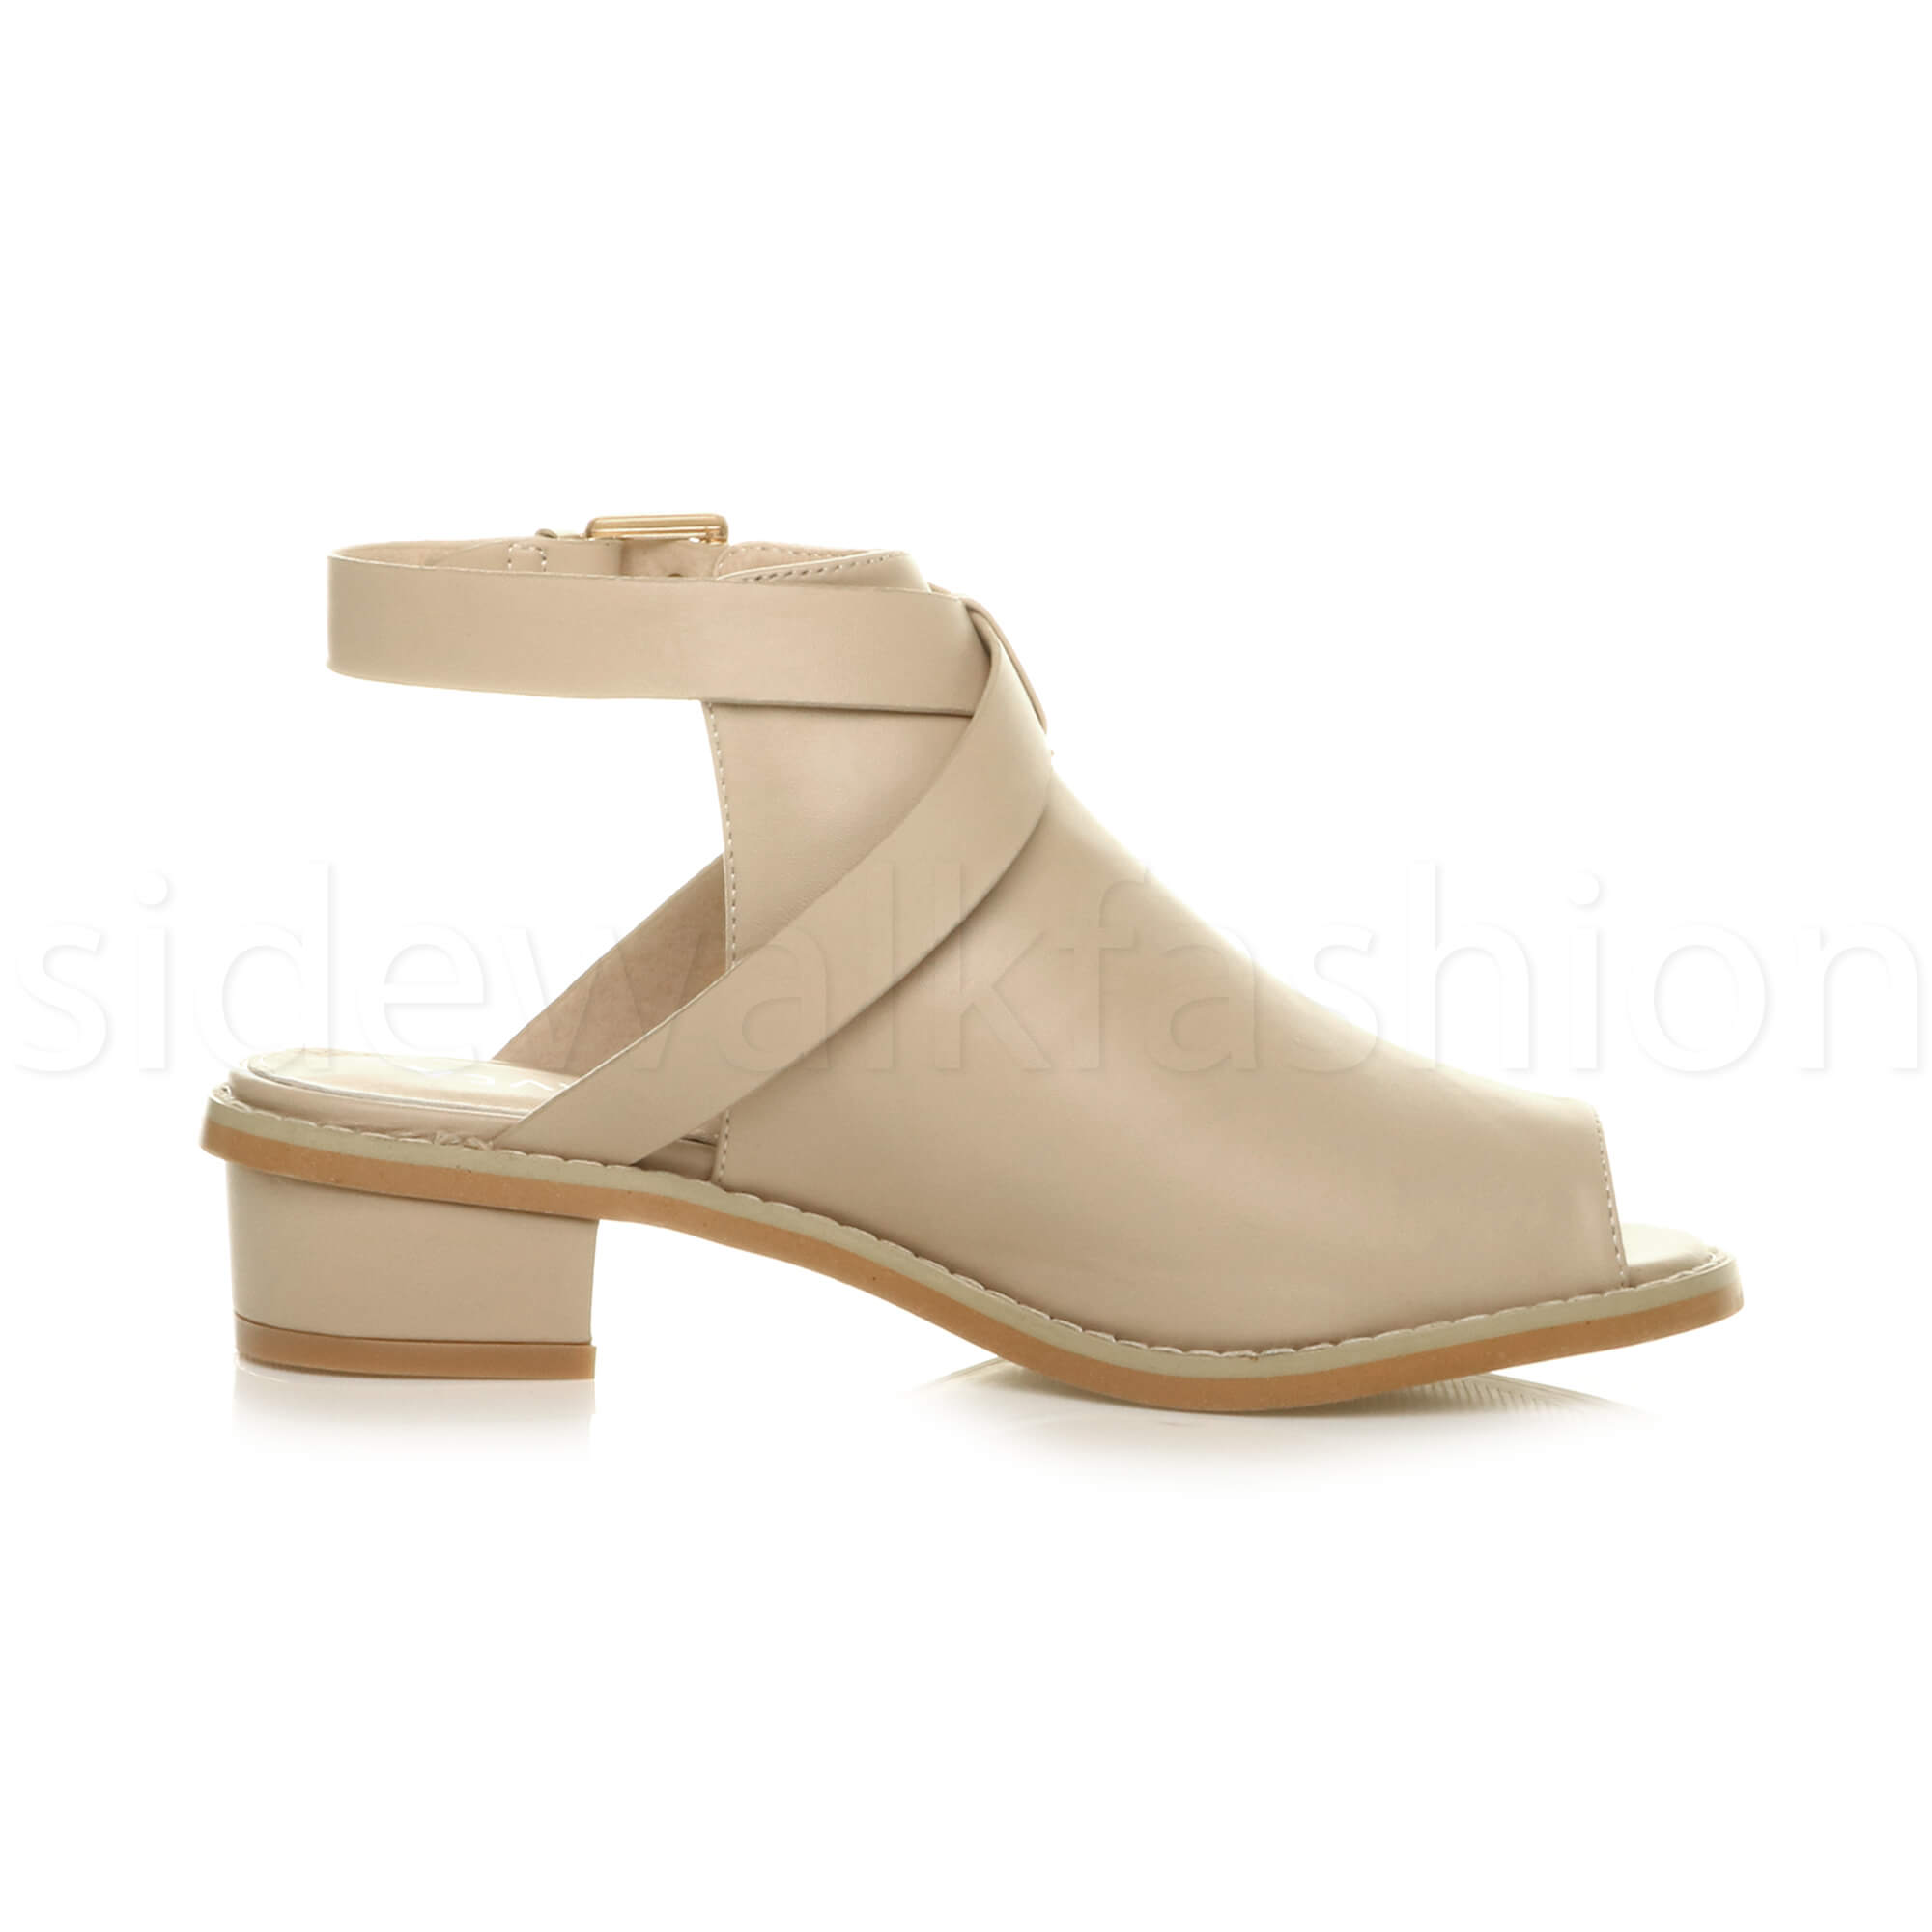 Womens-ladies-low-mid-heel-strap-open-backless-peep-toe-boots-sandals-shoes-size thumbnail 17